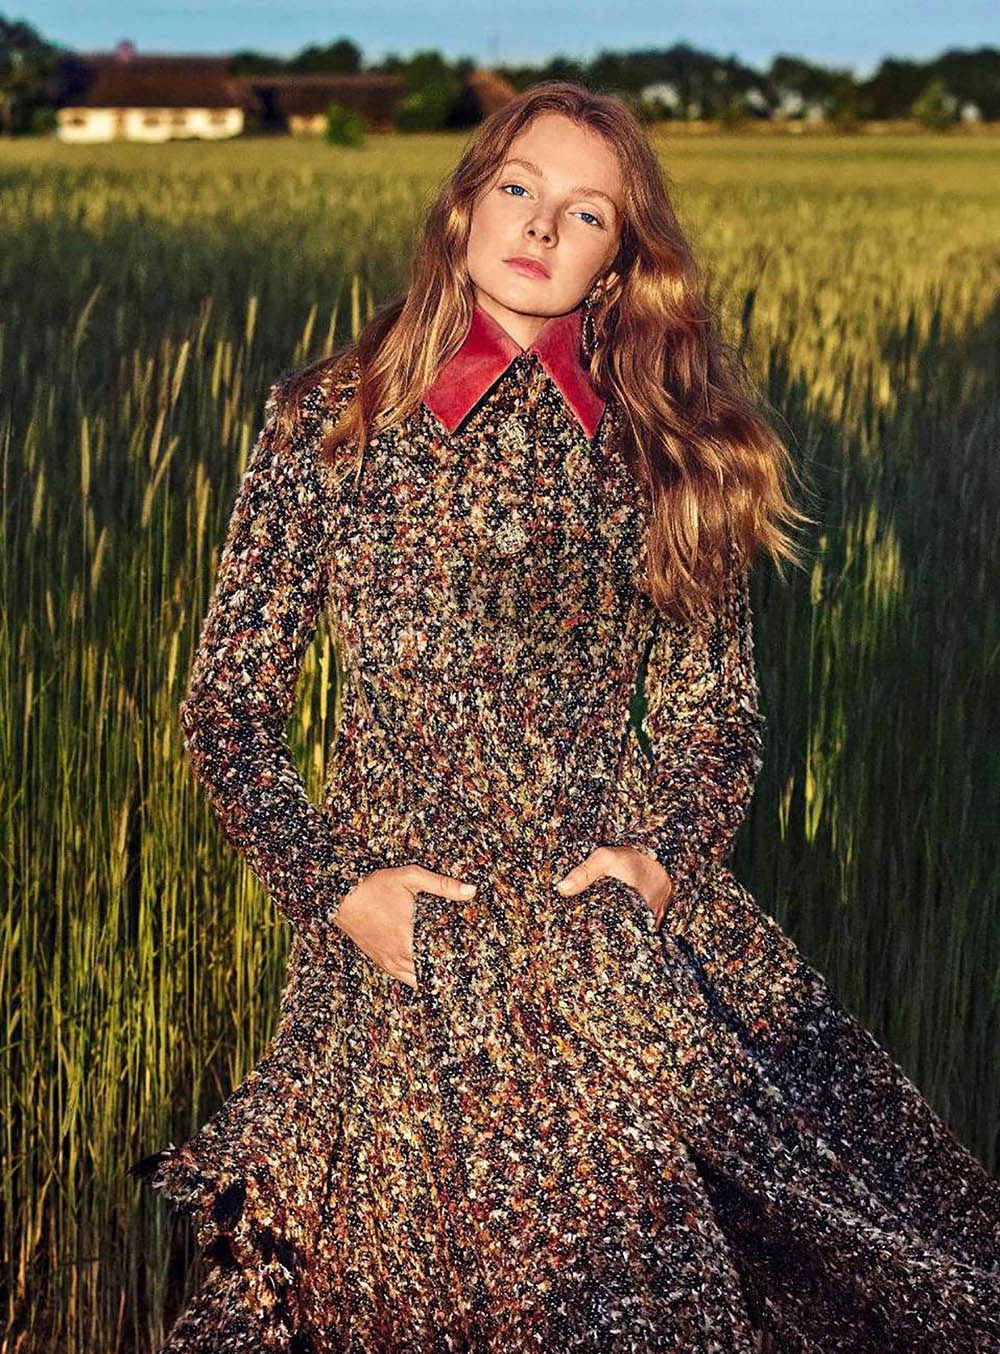 Eniko Mihalik by Marcin Tyszka for Harper's Bazaar Germany September 2018